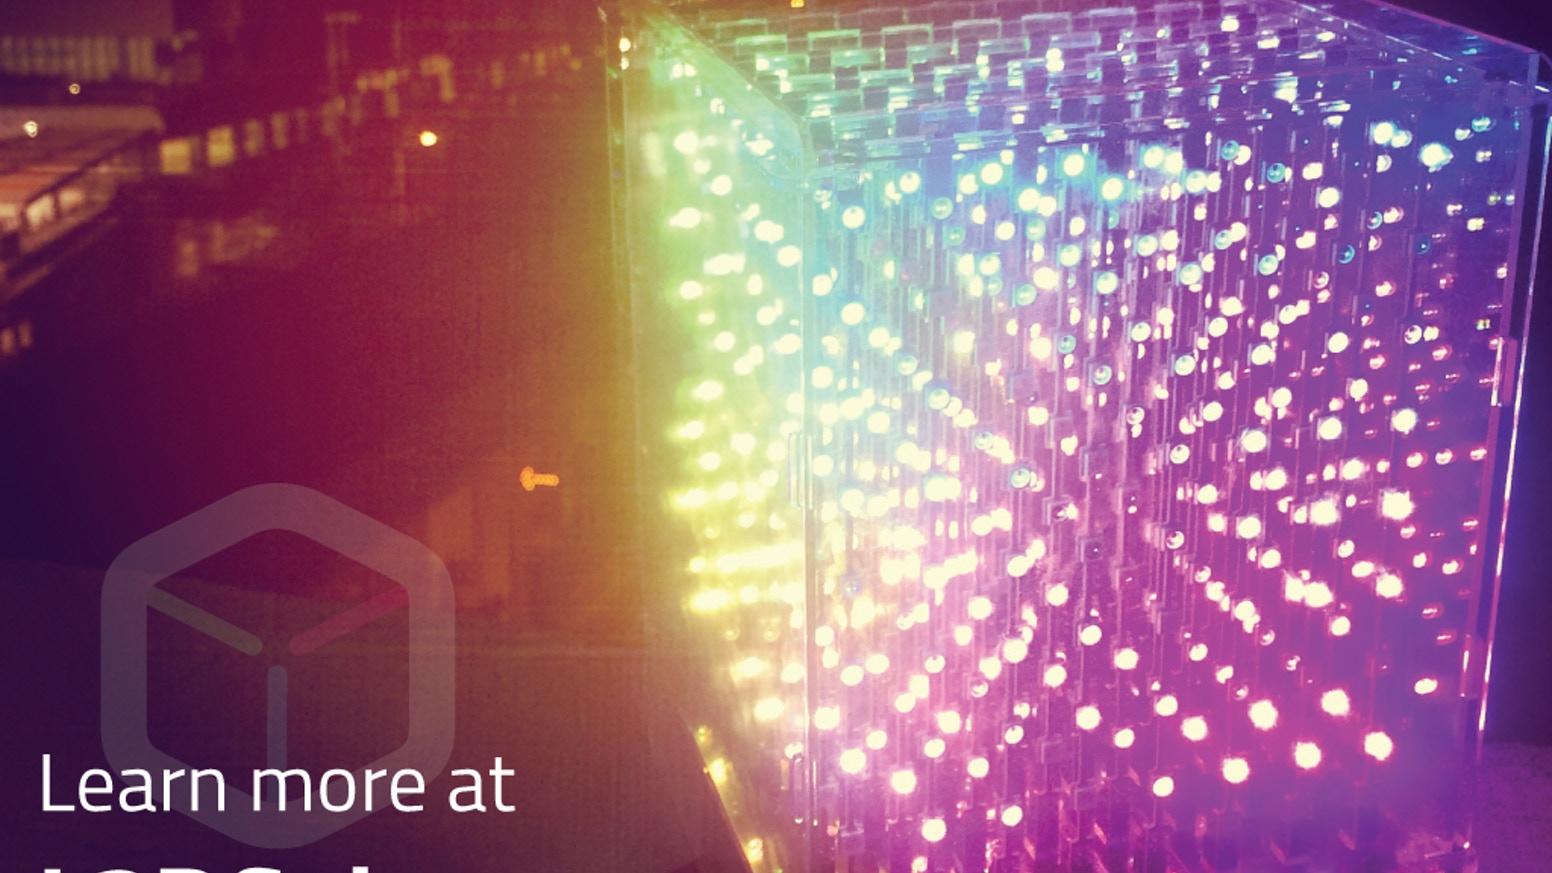 L3d Cube The 3d Led From Future By Looking Glass Kickstarter How To Build Multicolor Hd Music Internet Leds Create And Share In